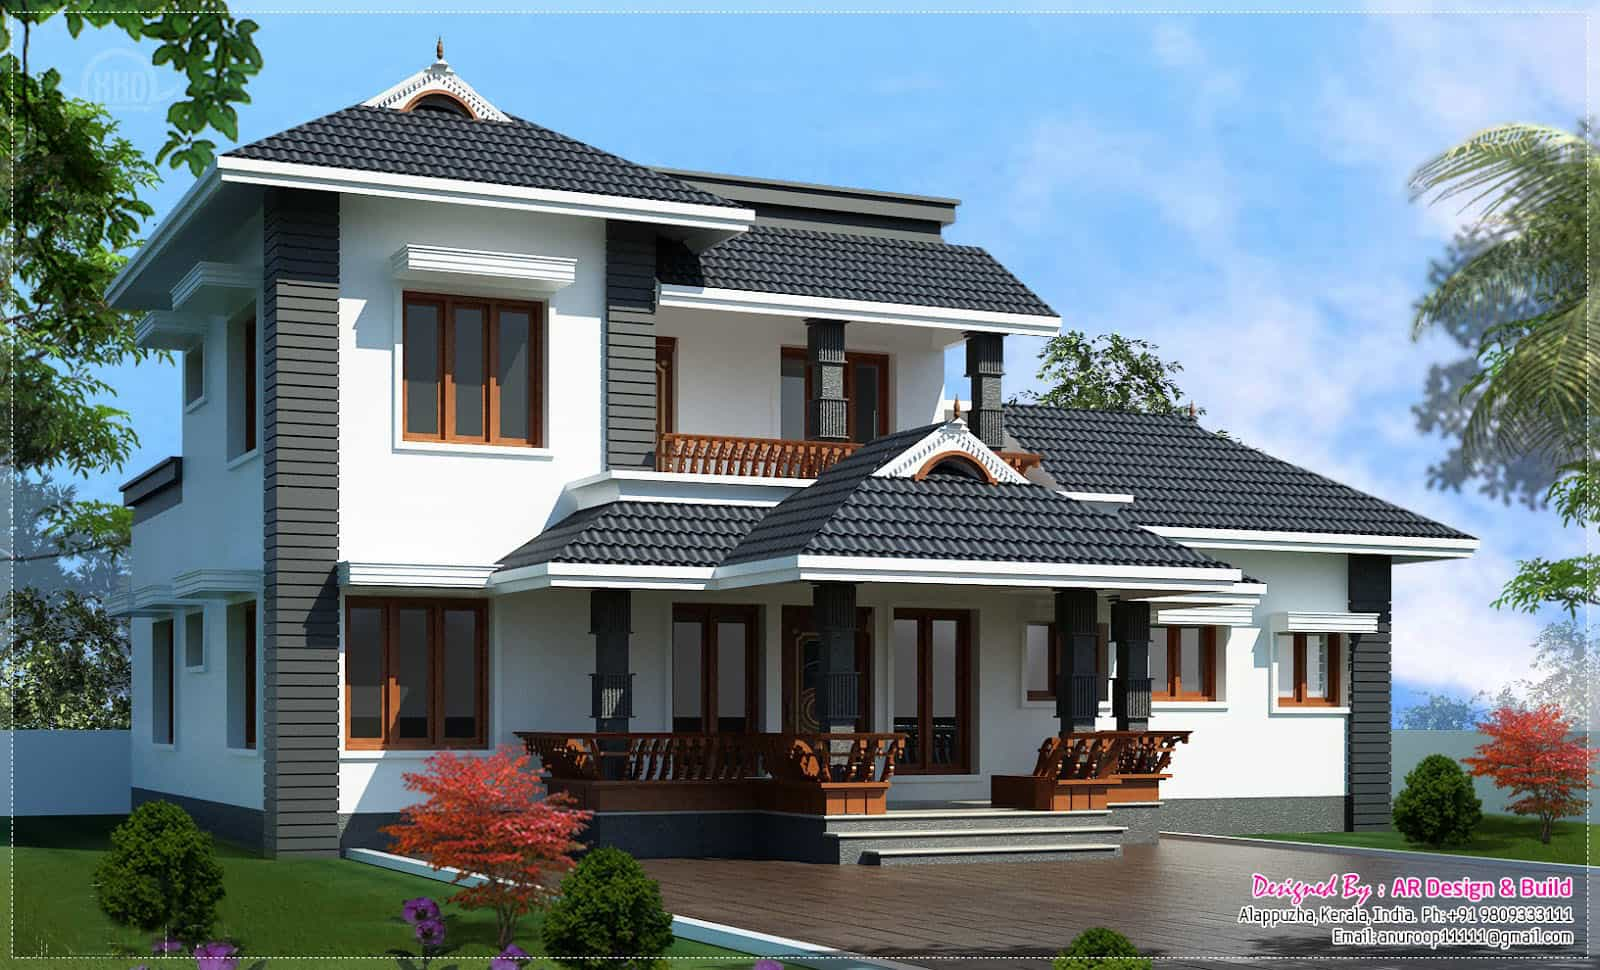 Roof Design Ideas: Sloping Roof Kerala House Design At 2000 Sq.ft